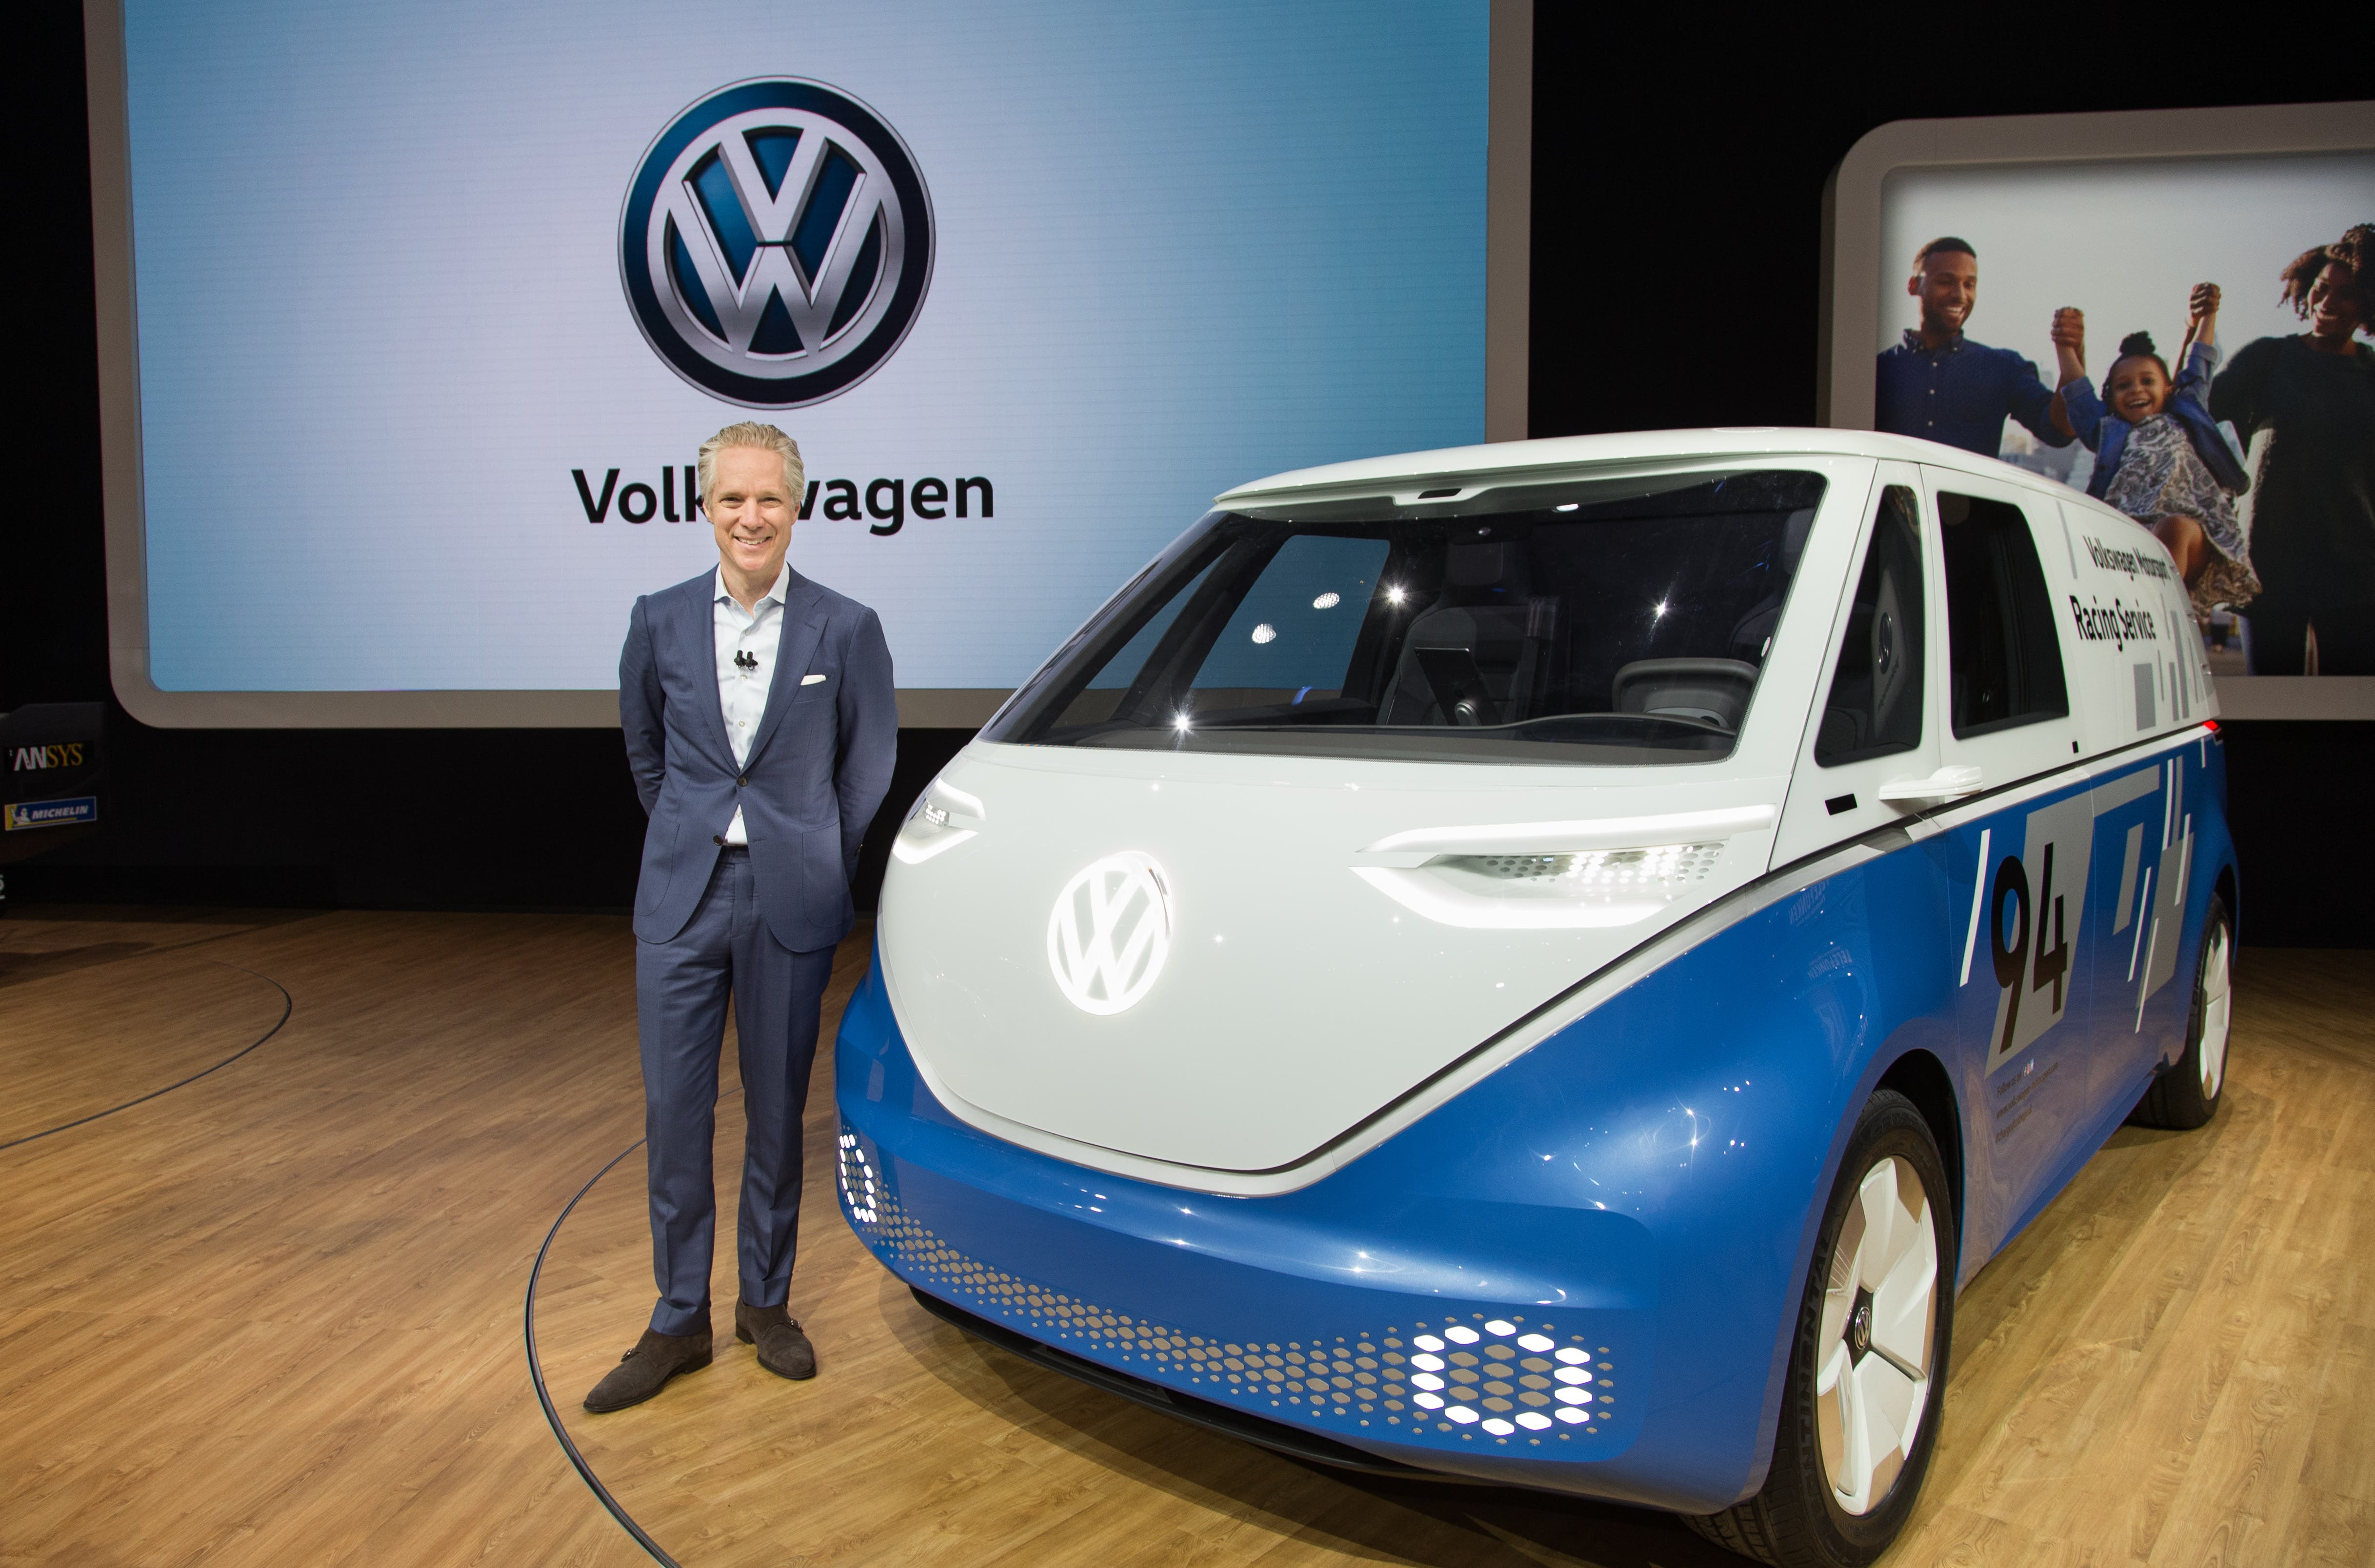 The First Id Branded Electric Car From Volkswagen Is Due To Roll Off Embly Line In Zwickau Germany Later This Year An Effort Burnish Its